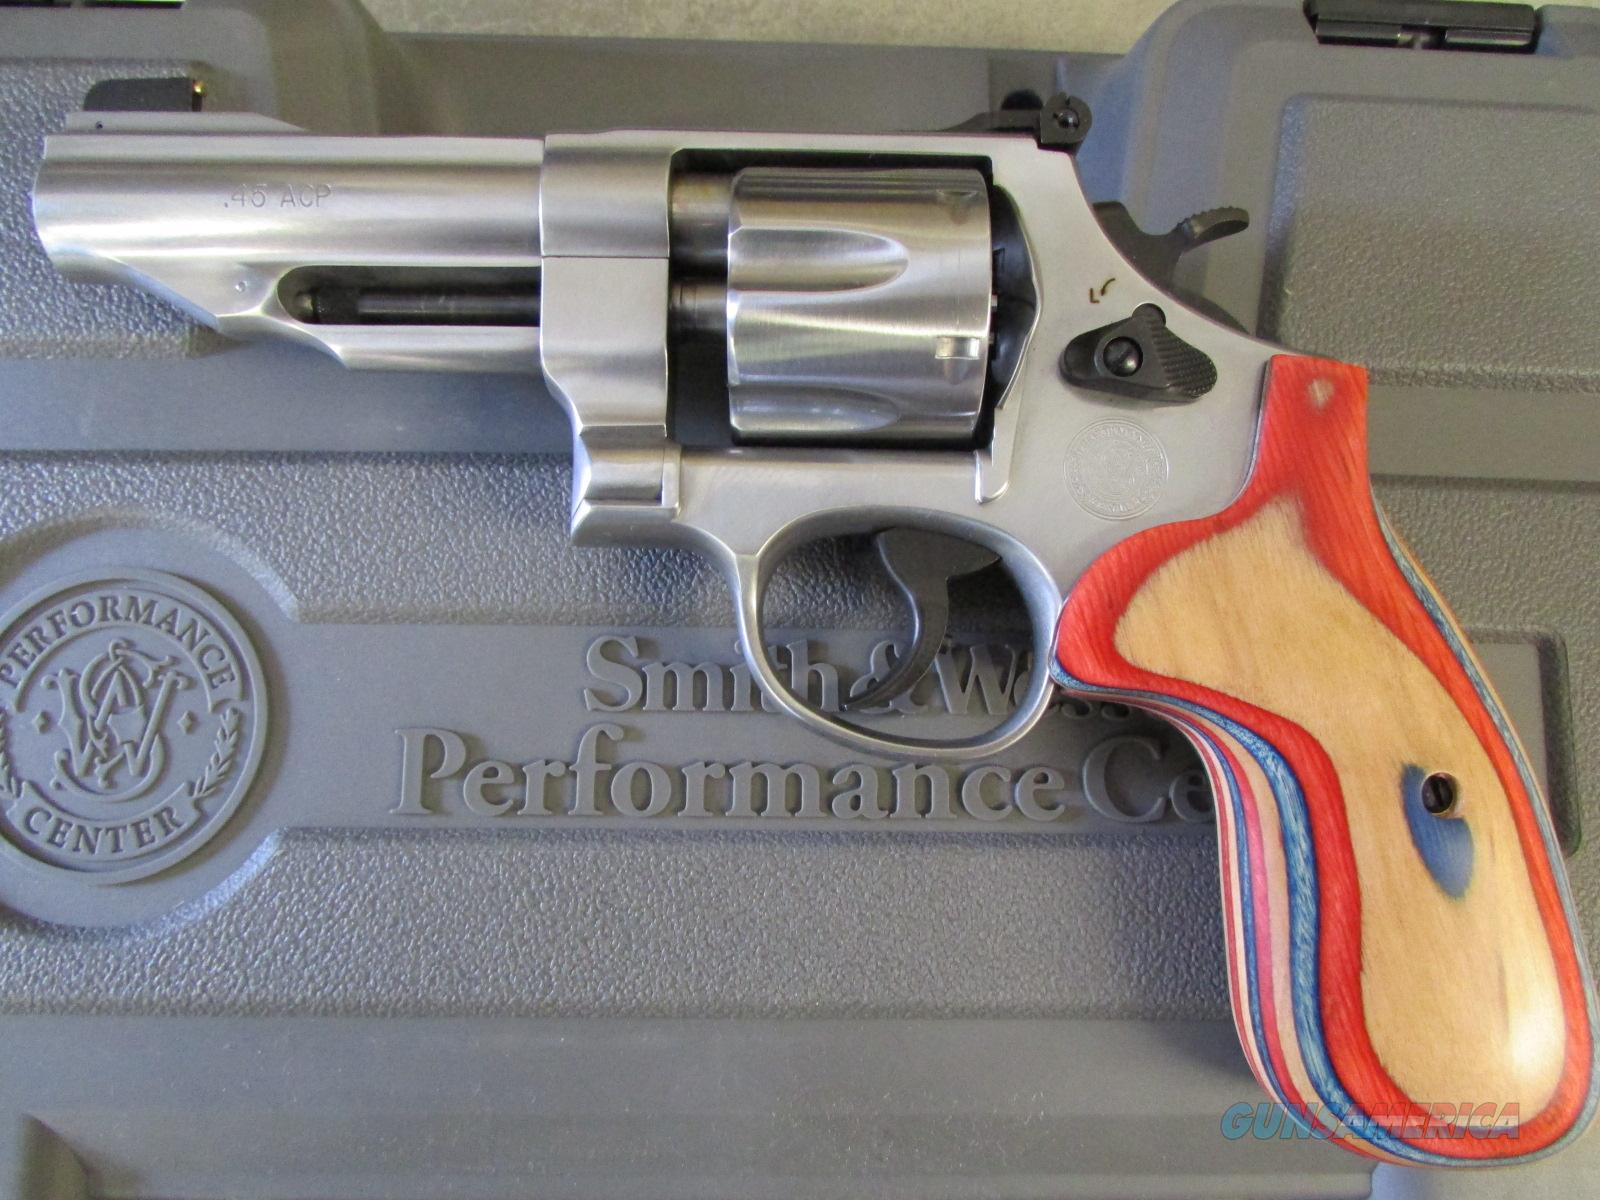 Smith & Wesson Model 625 Performance Center .45 ACP Revolver  Guns > Pistols > Smith & Wesson Revolvers > Performance Center